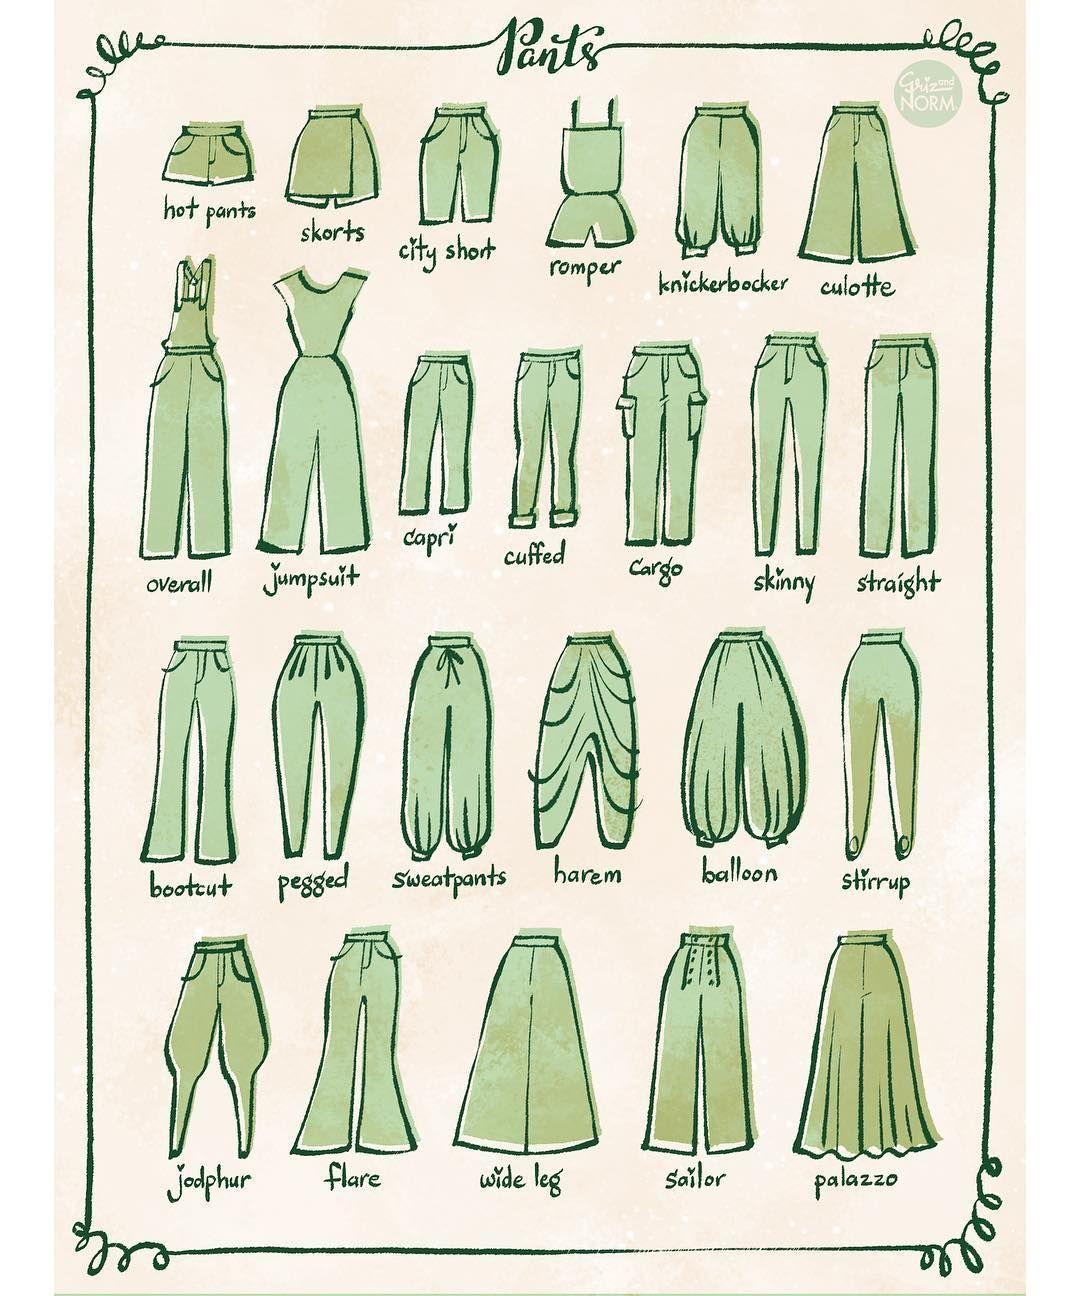 Griz And Norm Lemay On Instagram From 100 Tuesday Tips Volume 2 Some Of The Different Type Of Pants I Personally Love Cu Sketsa Cara Menggambar Gambar Mode